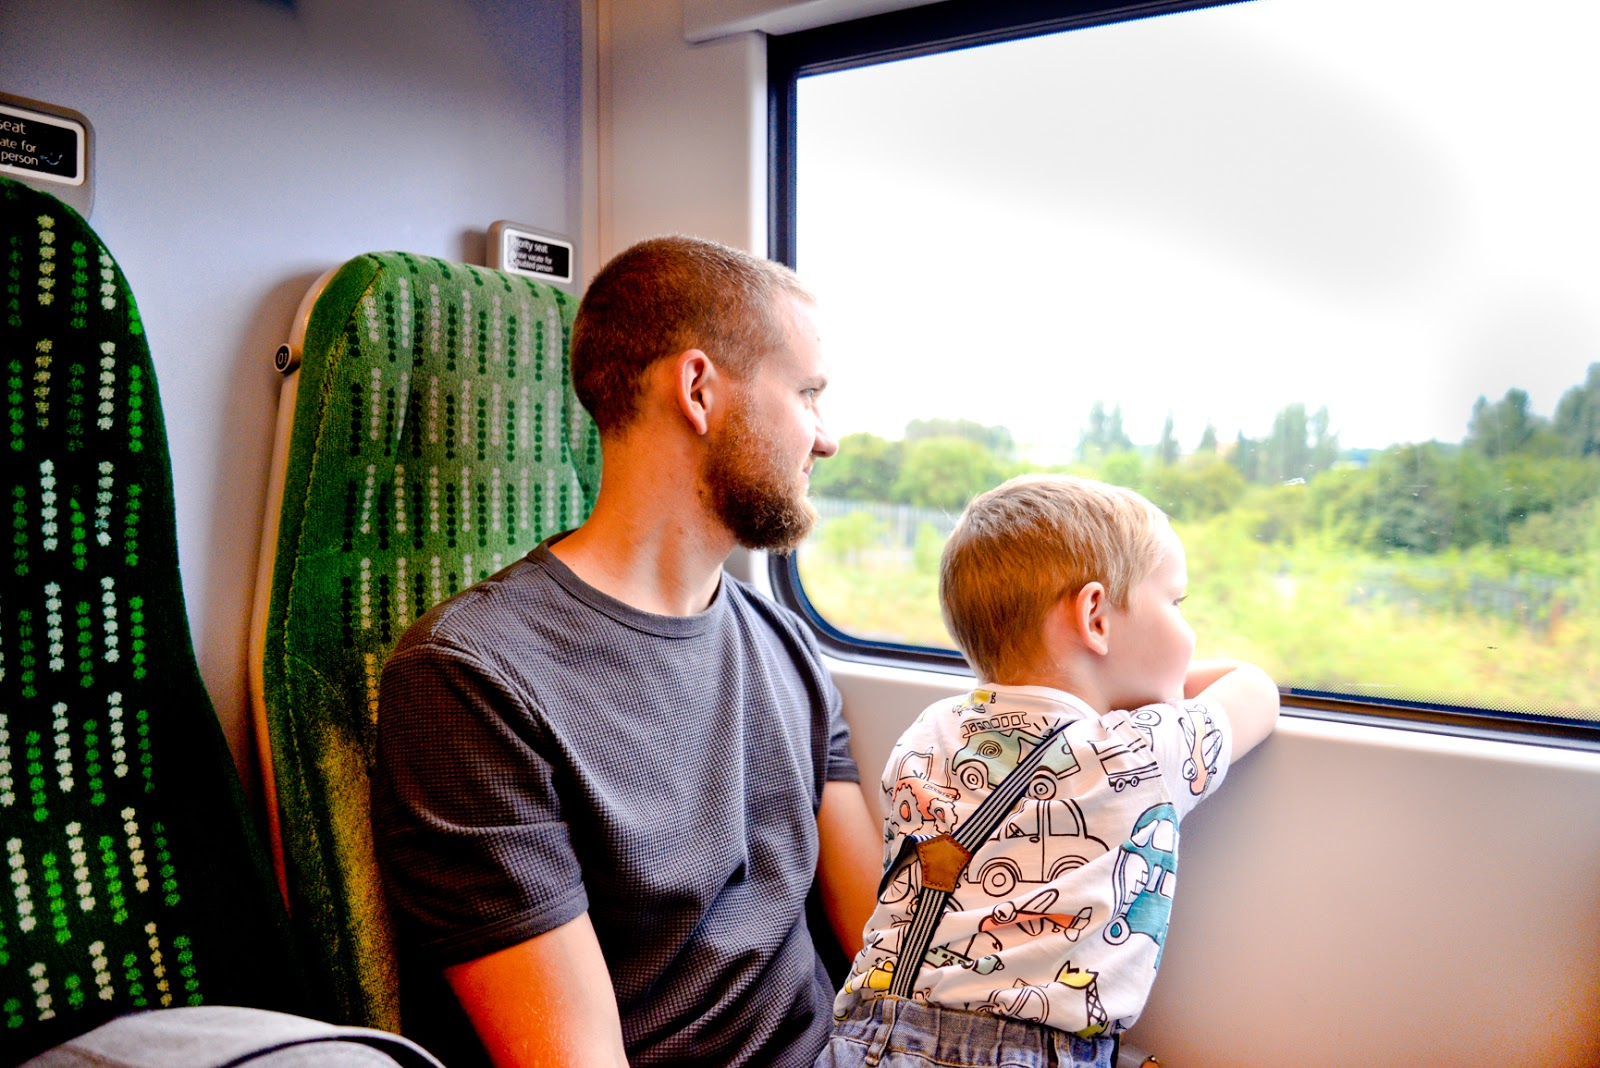 national rail plus bike, family day out in cambridge, cycling route Cambridge, family cycling route cambridge, cycling routes with kids,